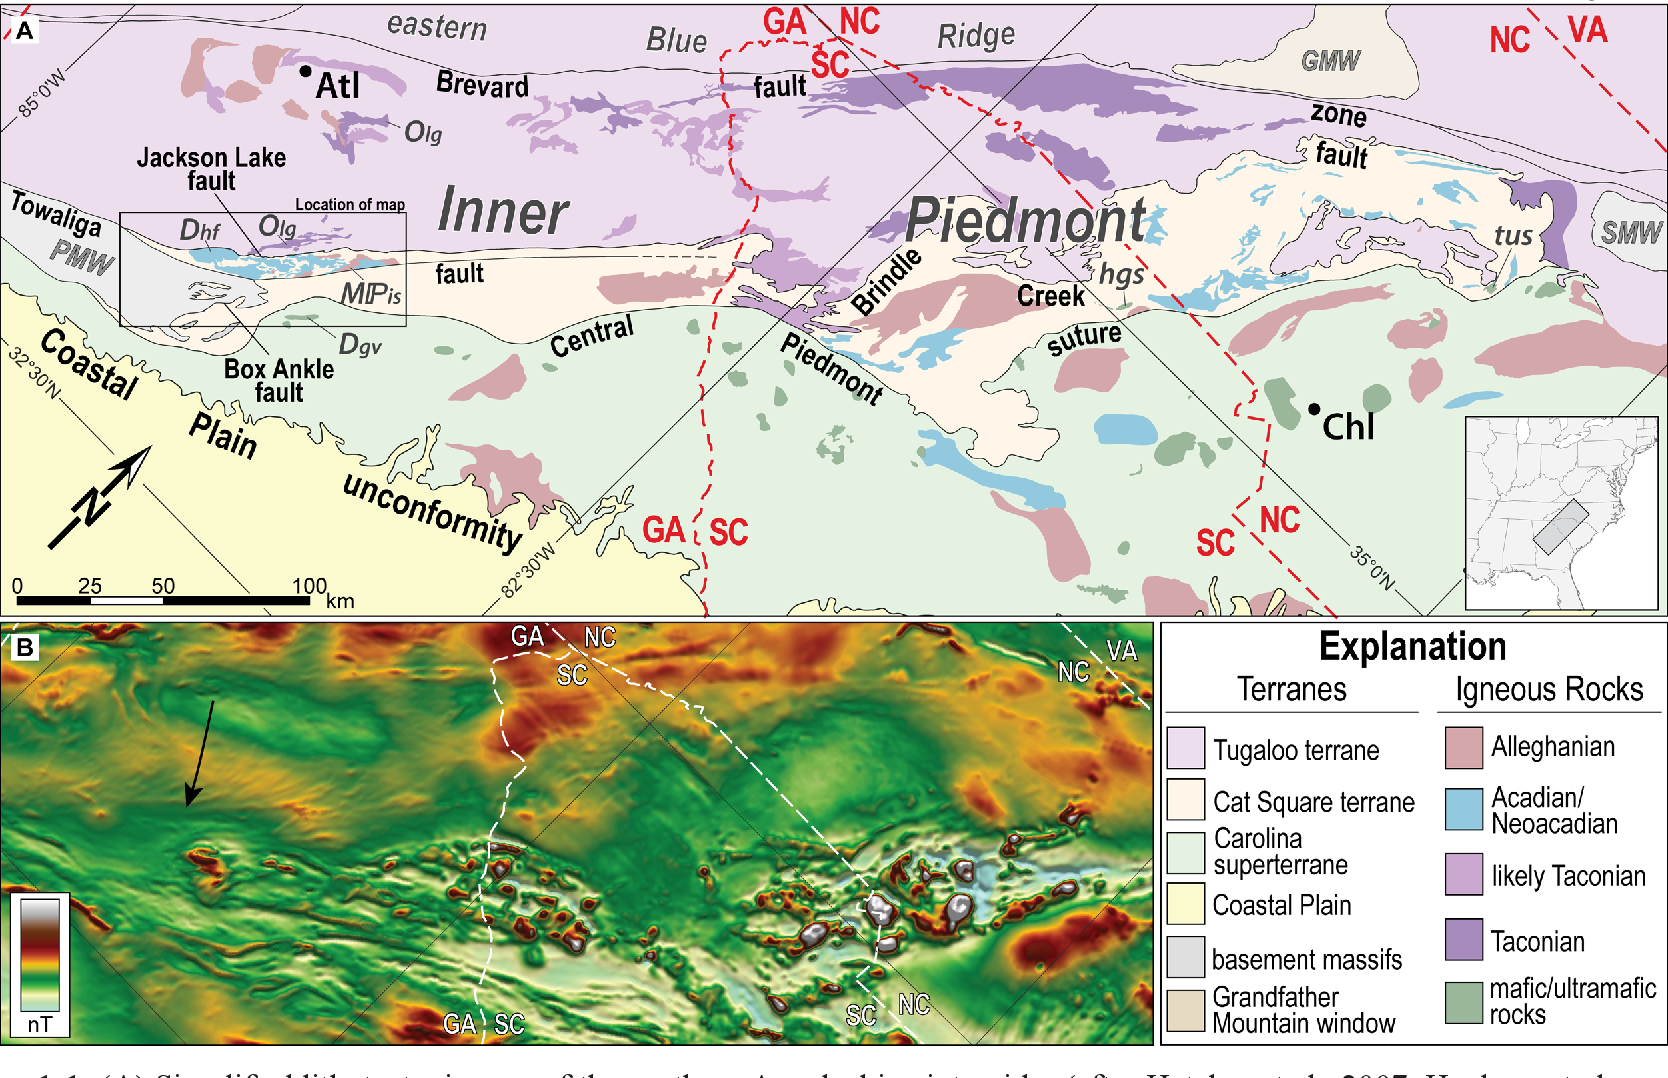 Geologic Map Of Georgia.Geologic Investigations In The Central Georgia Inner Piedmont And